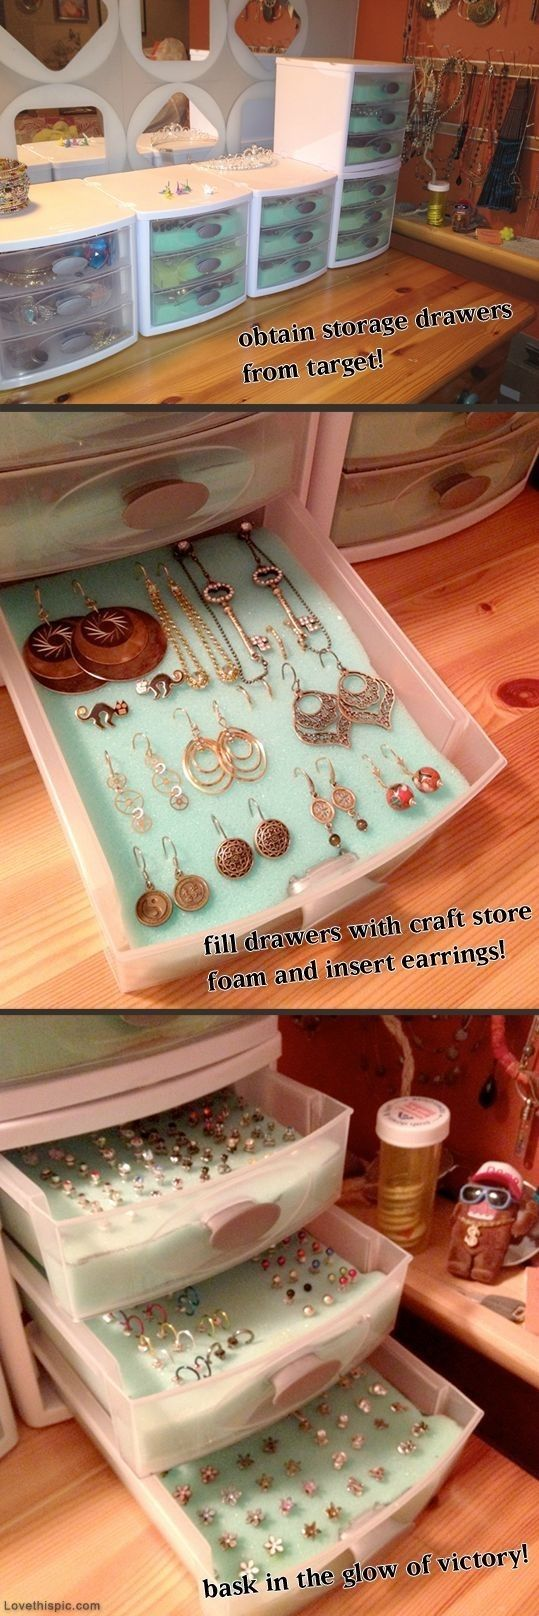 Earring Storage earrings organize organization organizing organization ideas being organized organization images jewerly storage ideas